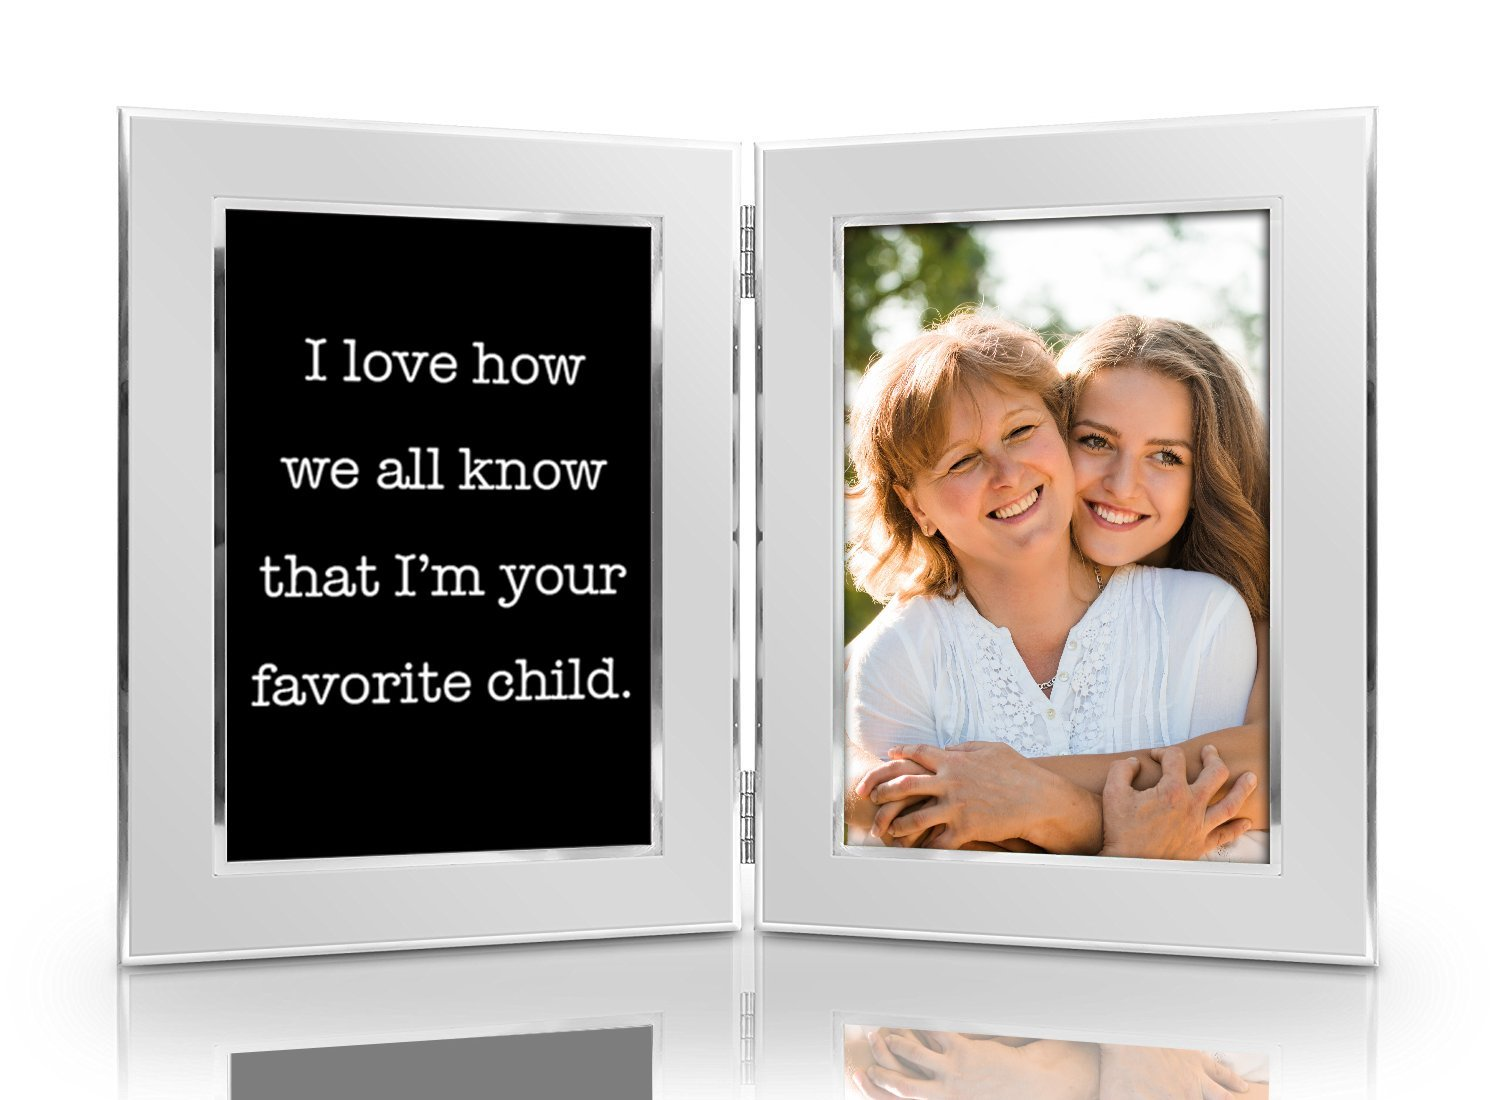 I Love How We All Know That I'm Your Favorite Child 4x6 Funny Picture Frame Set - Premium Double Hinged Frames - Gift for Mom, Dad, Husband, Wife, Men, Women Birthday, Mother's Father's Day Christmas